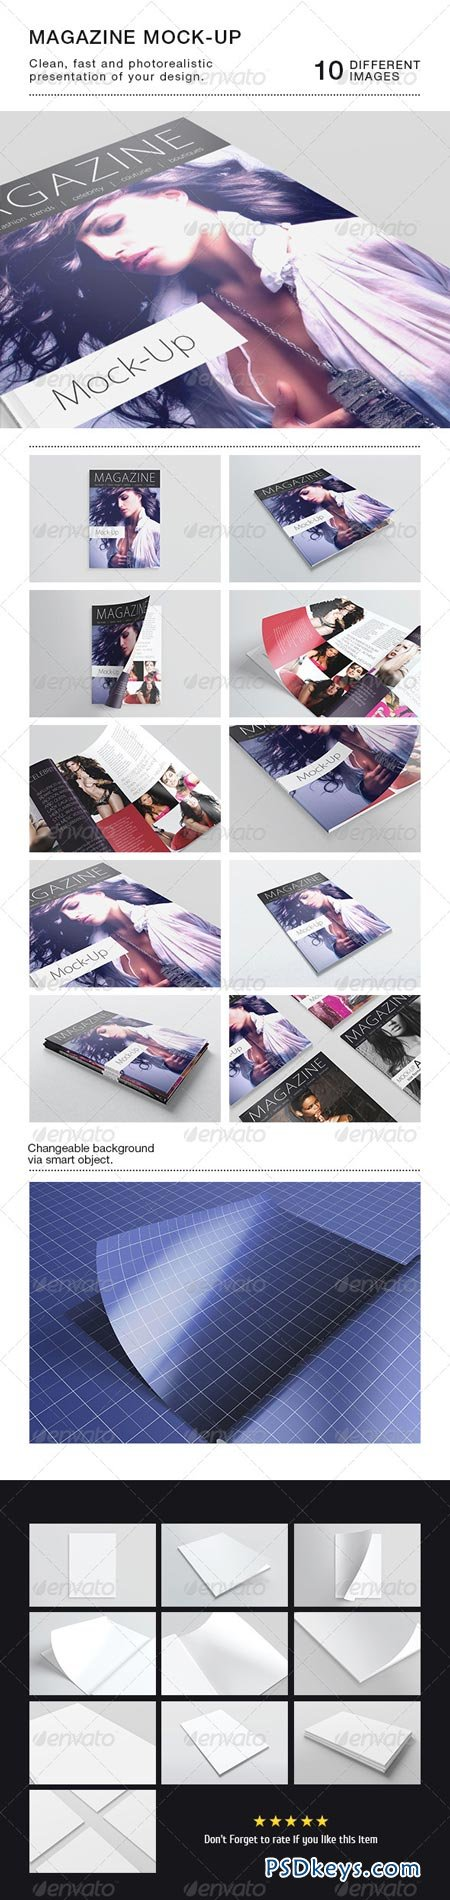 Photorealistic A5 A4 Magazine Mock-up 6393358